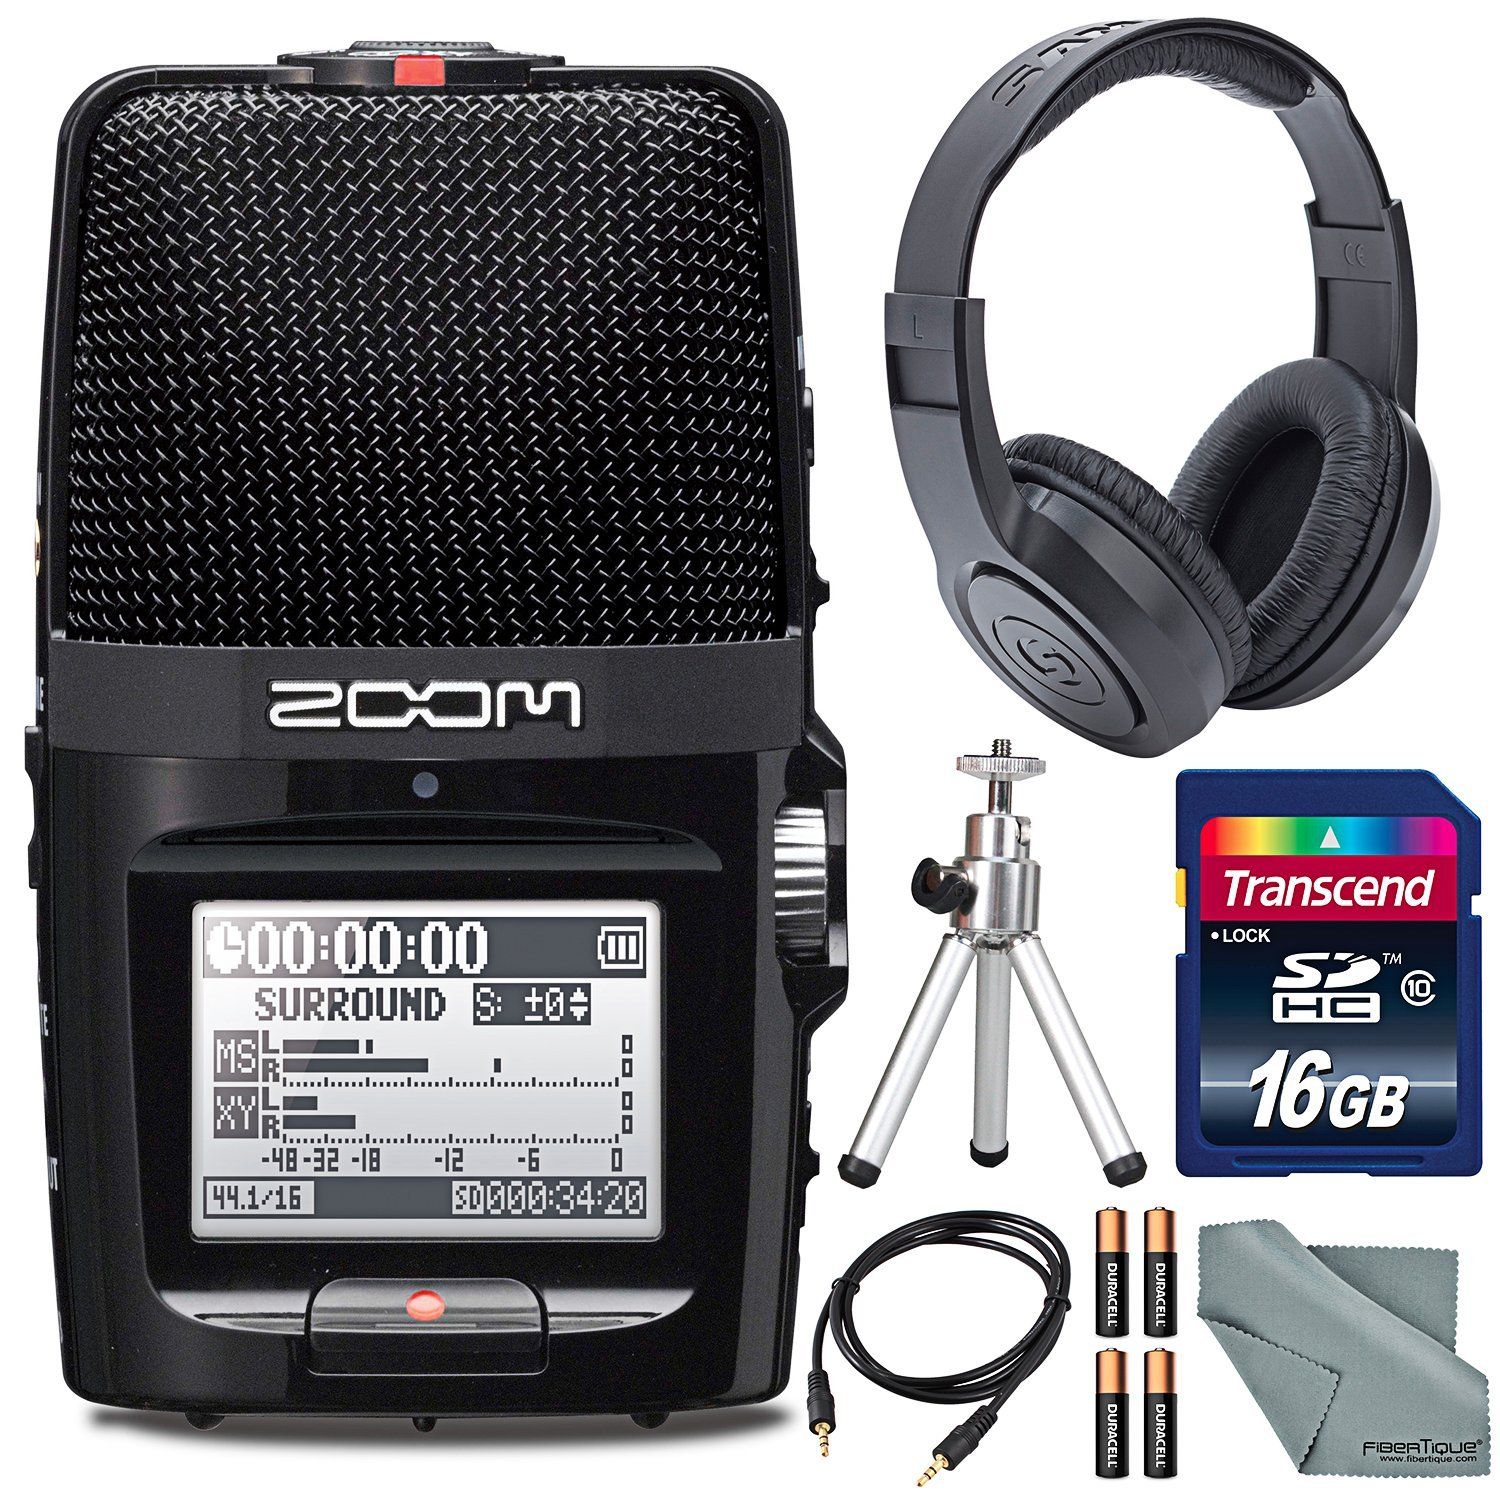 Cheap Zoom Recorder Manual Find Deals On Line Aph 1 Accessory Package For H1 Get Quotations H2n Handy Digital Along With Samson Studio Headphones And Deluxe Bundle